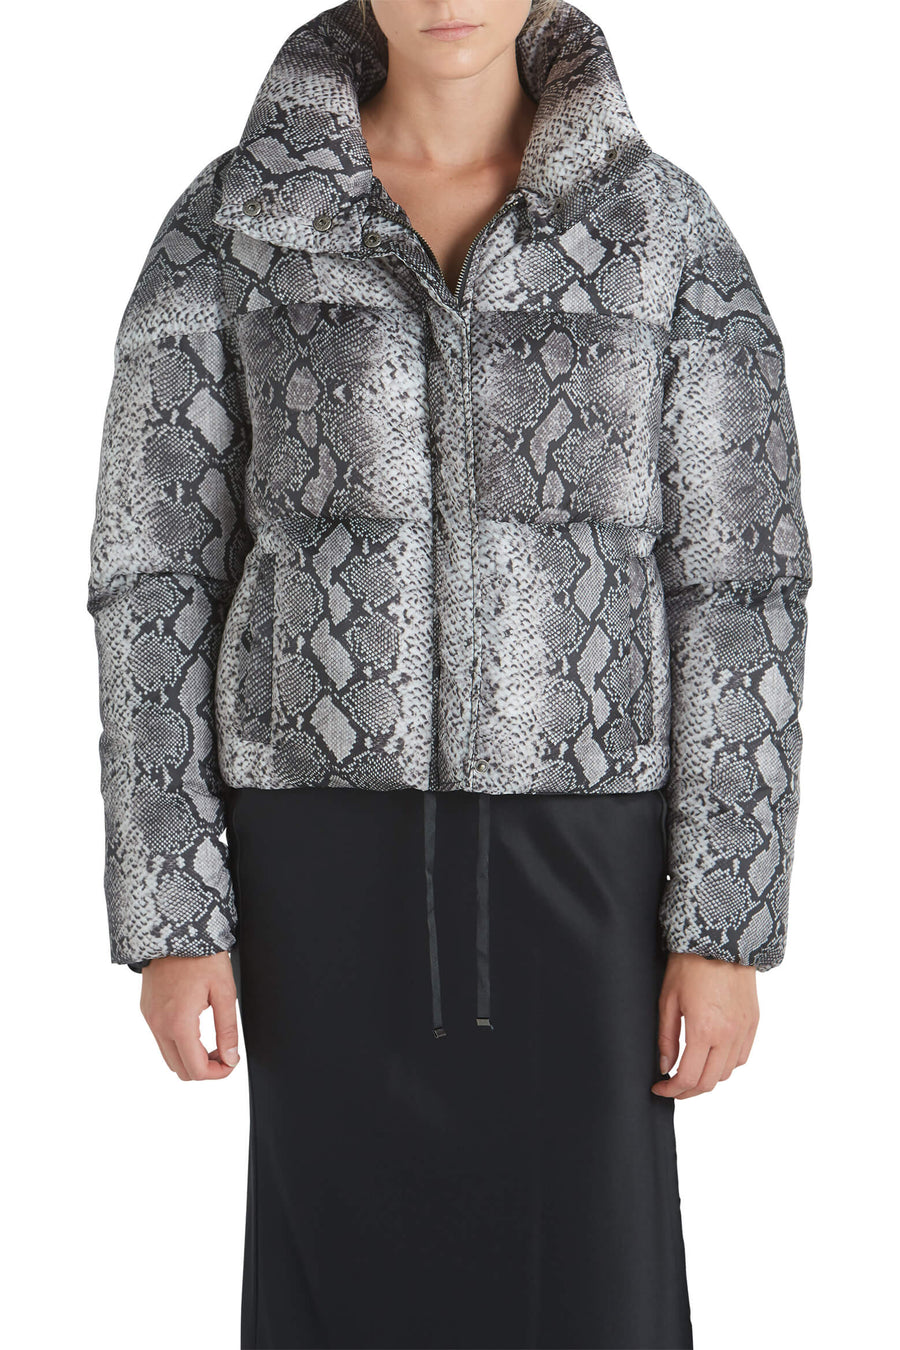 Jamie Python Bomber in Grey Python Print from The New Trend